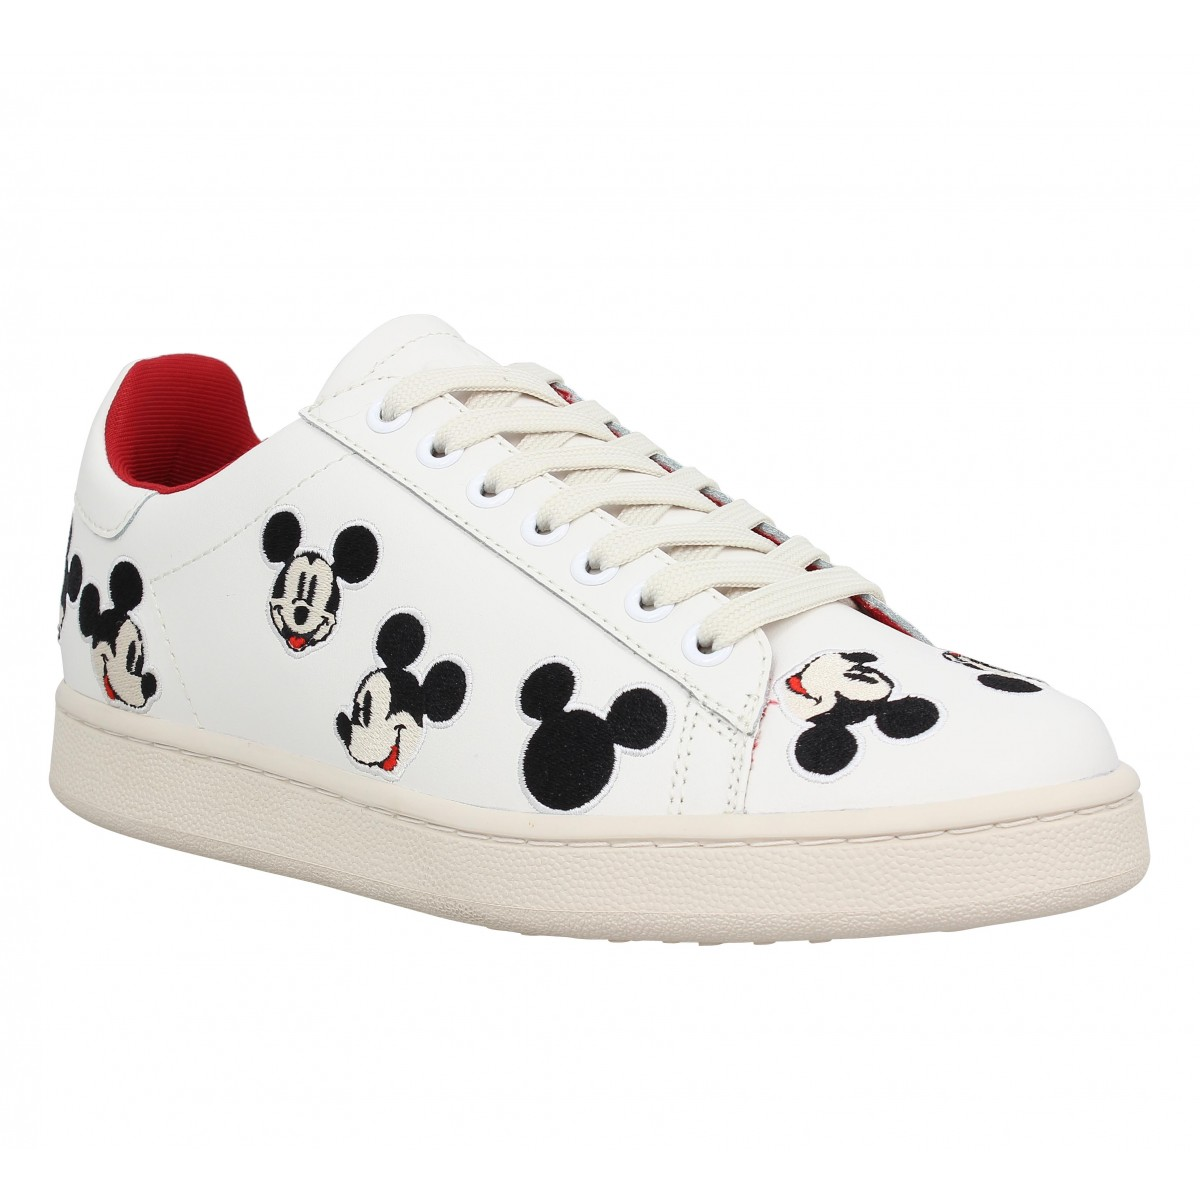 Baskets MOA - Master Of Arts Disney cuir Femme Blanc